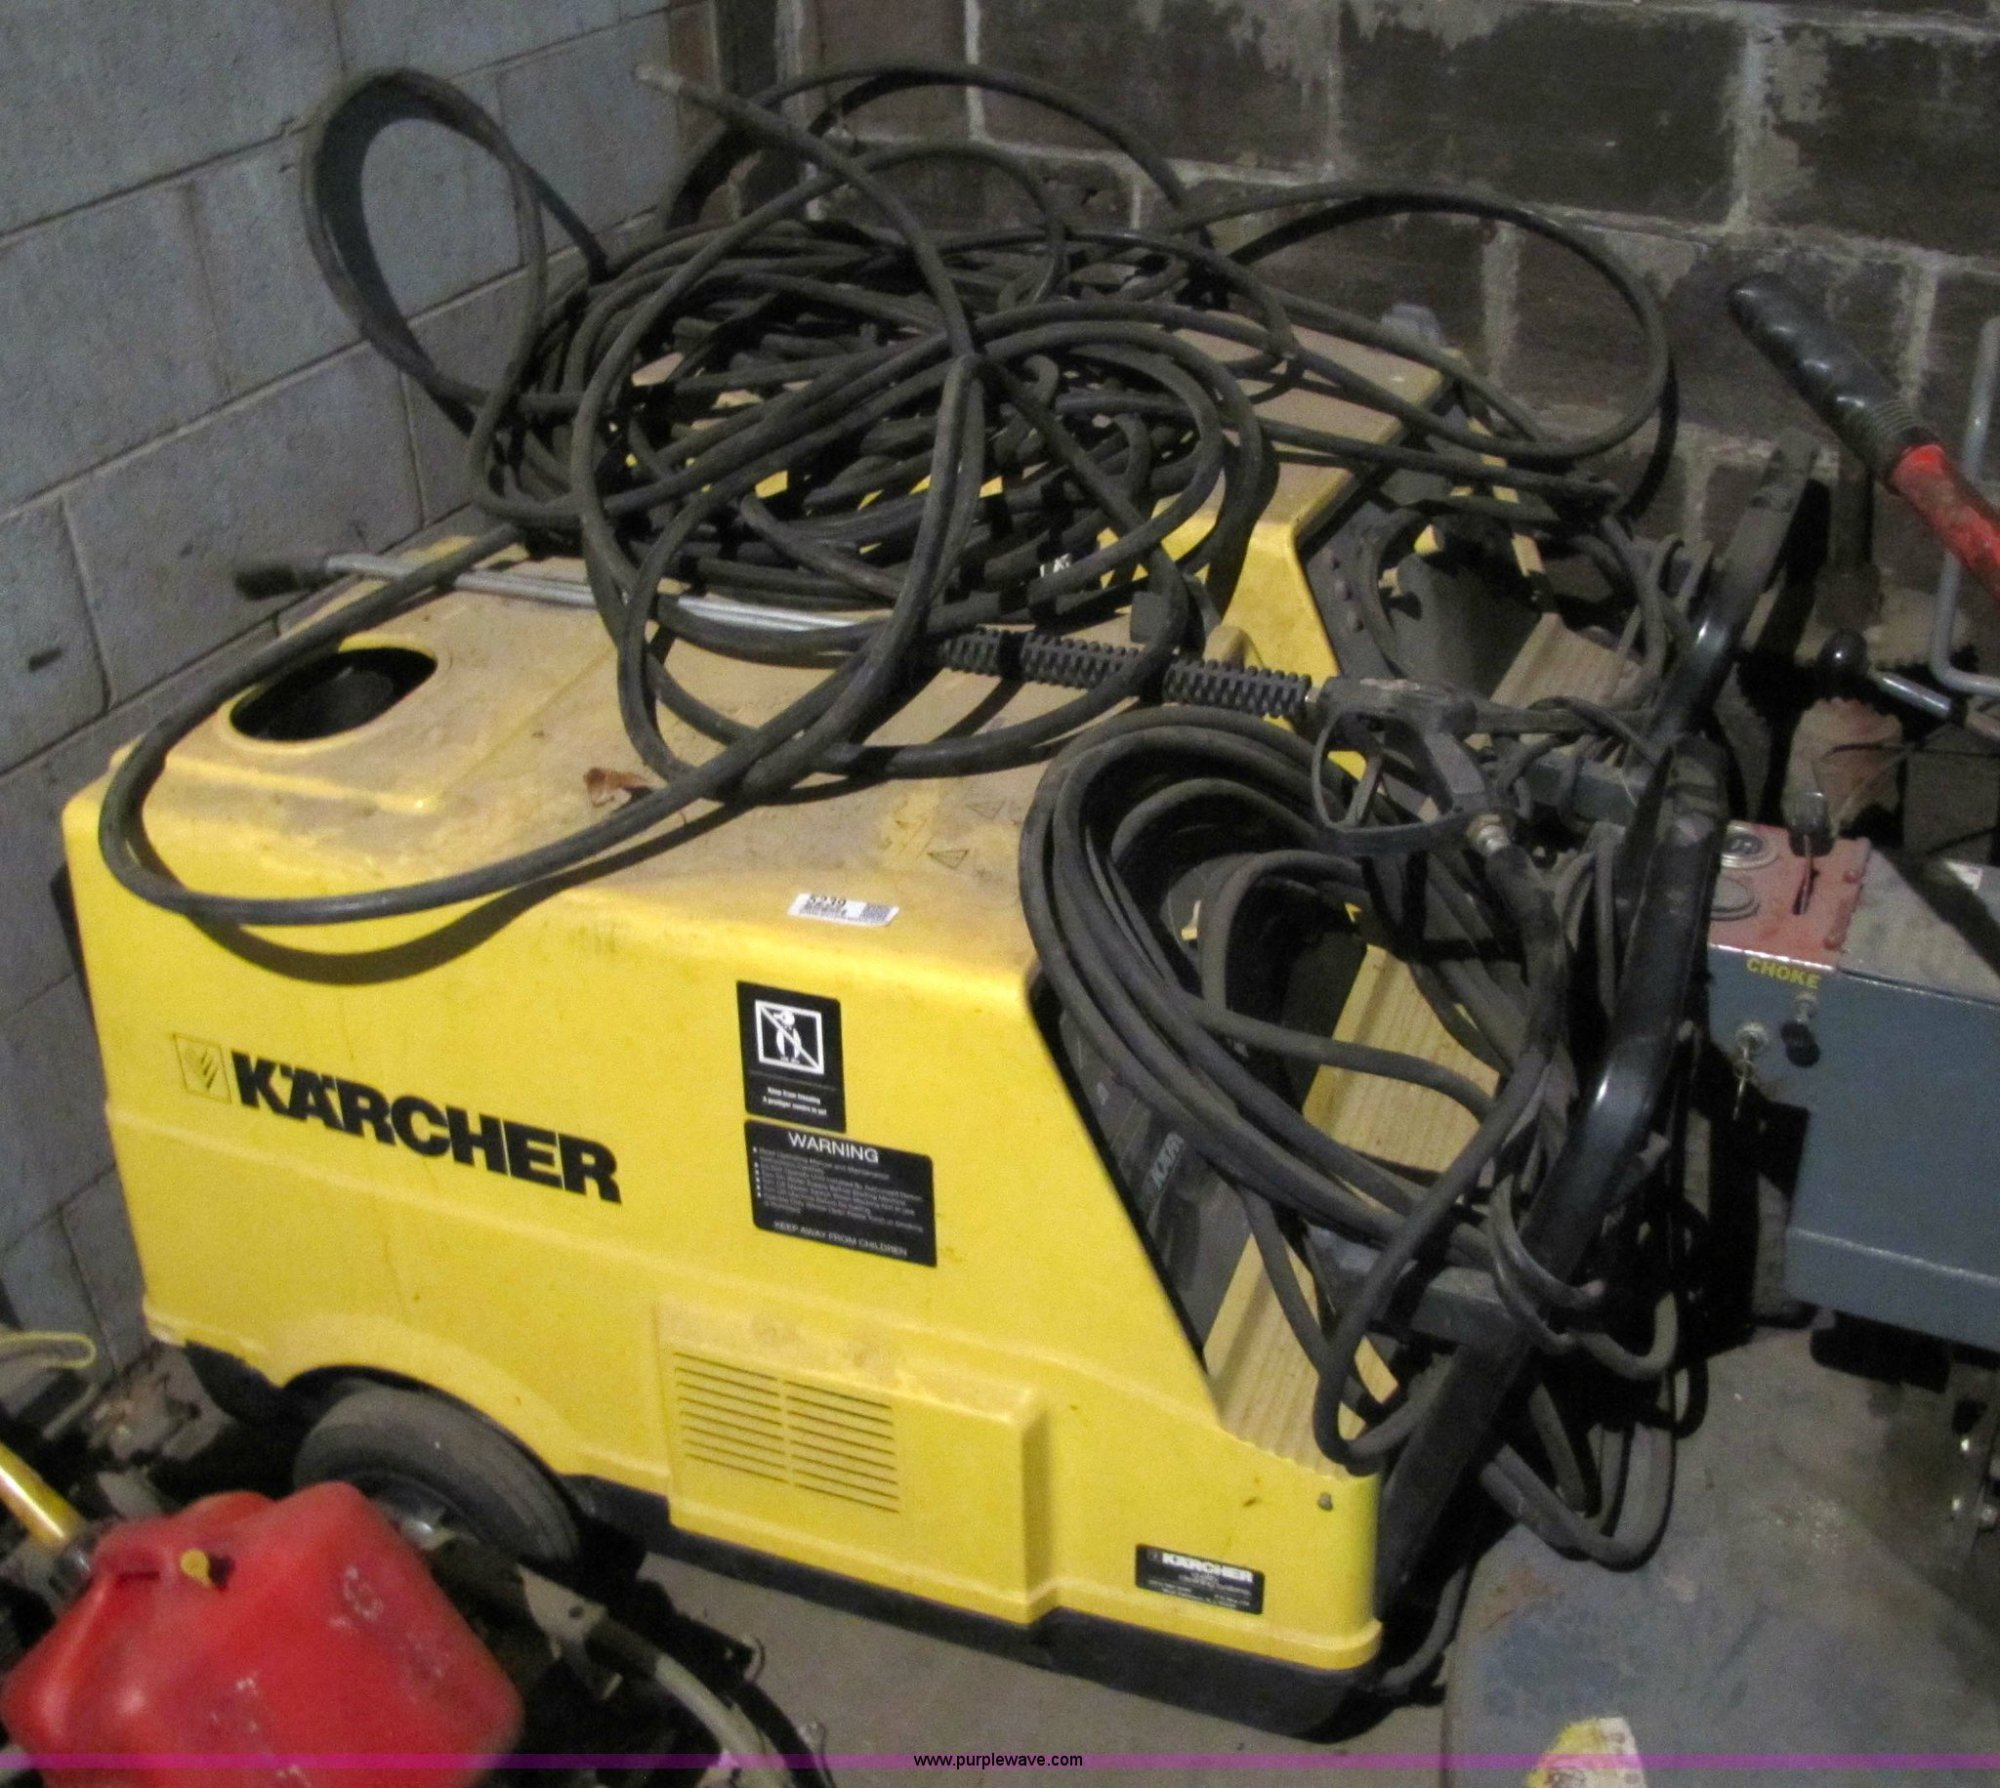 hight resolution of 2 karcher hot water high pressure washers item 5239 so hotsy pressure washer parts diagram